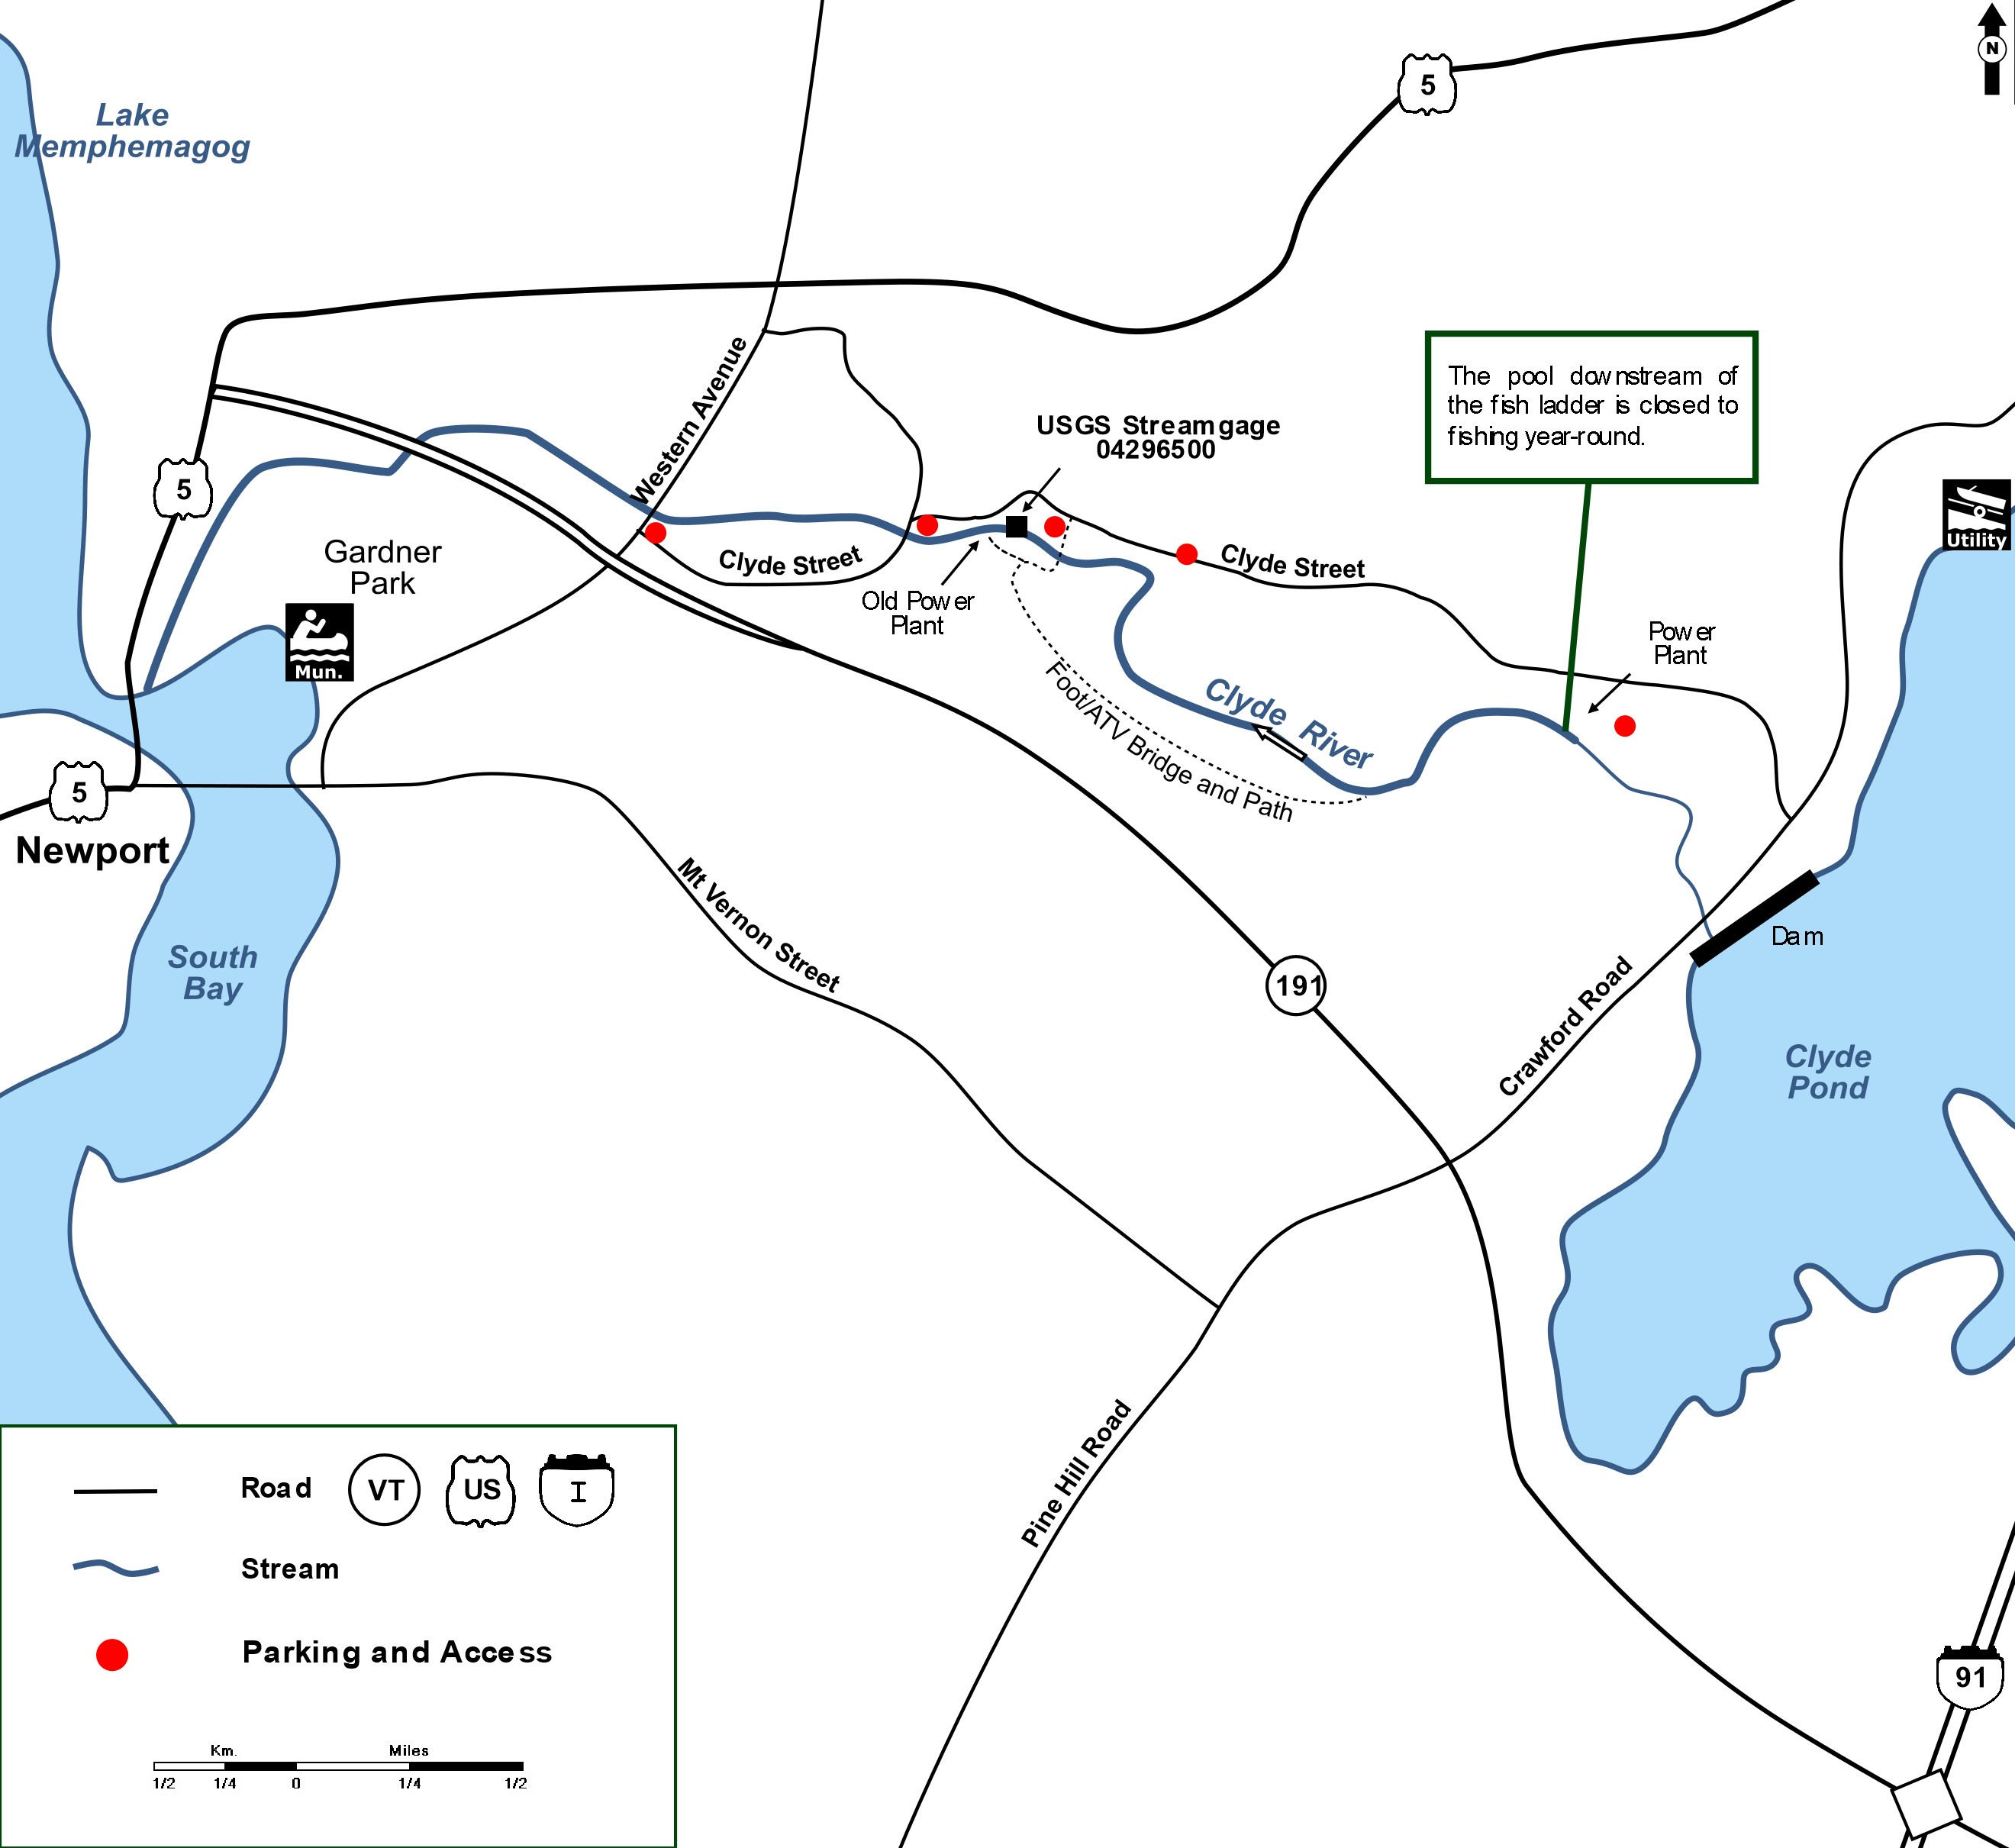 Custom detailed map showing the Clyde River in Newport with the accesses. This is a renowned salmon fishing destination.